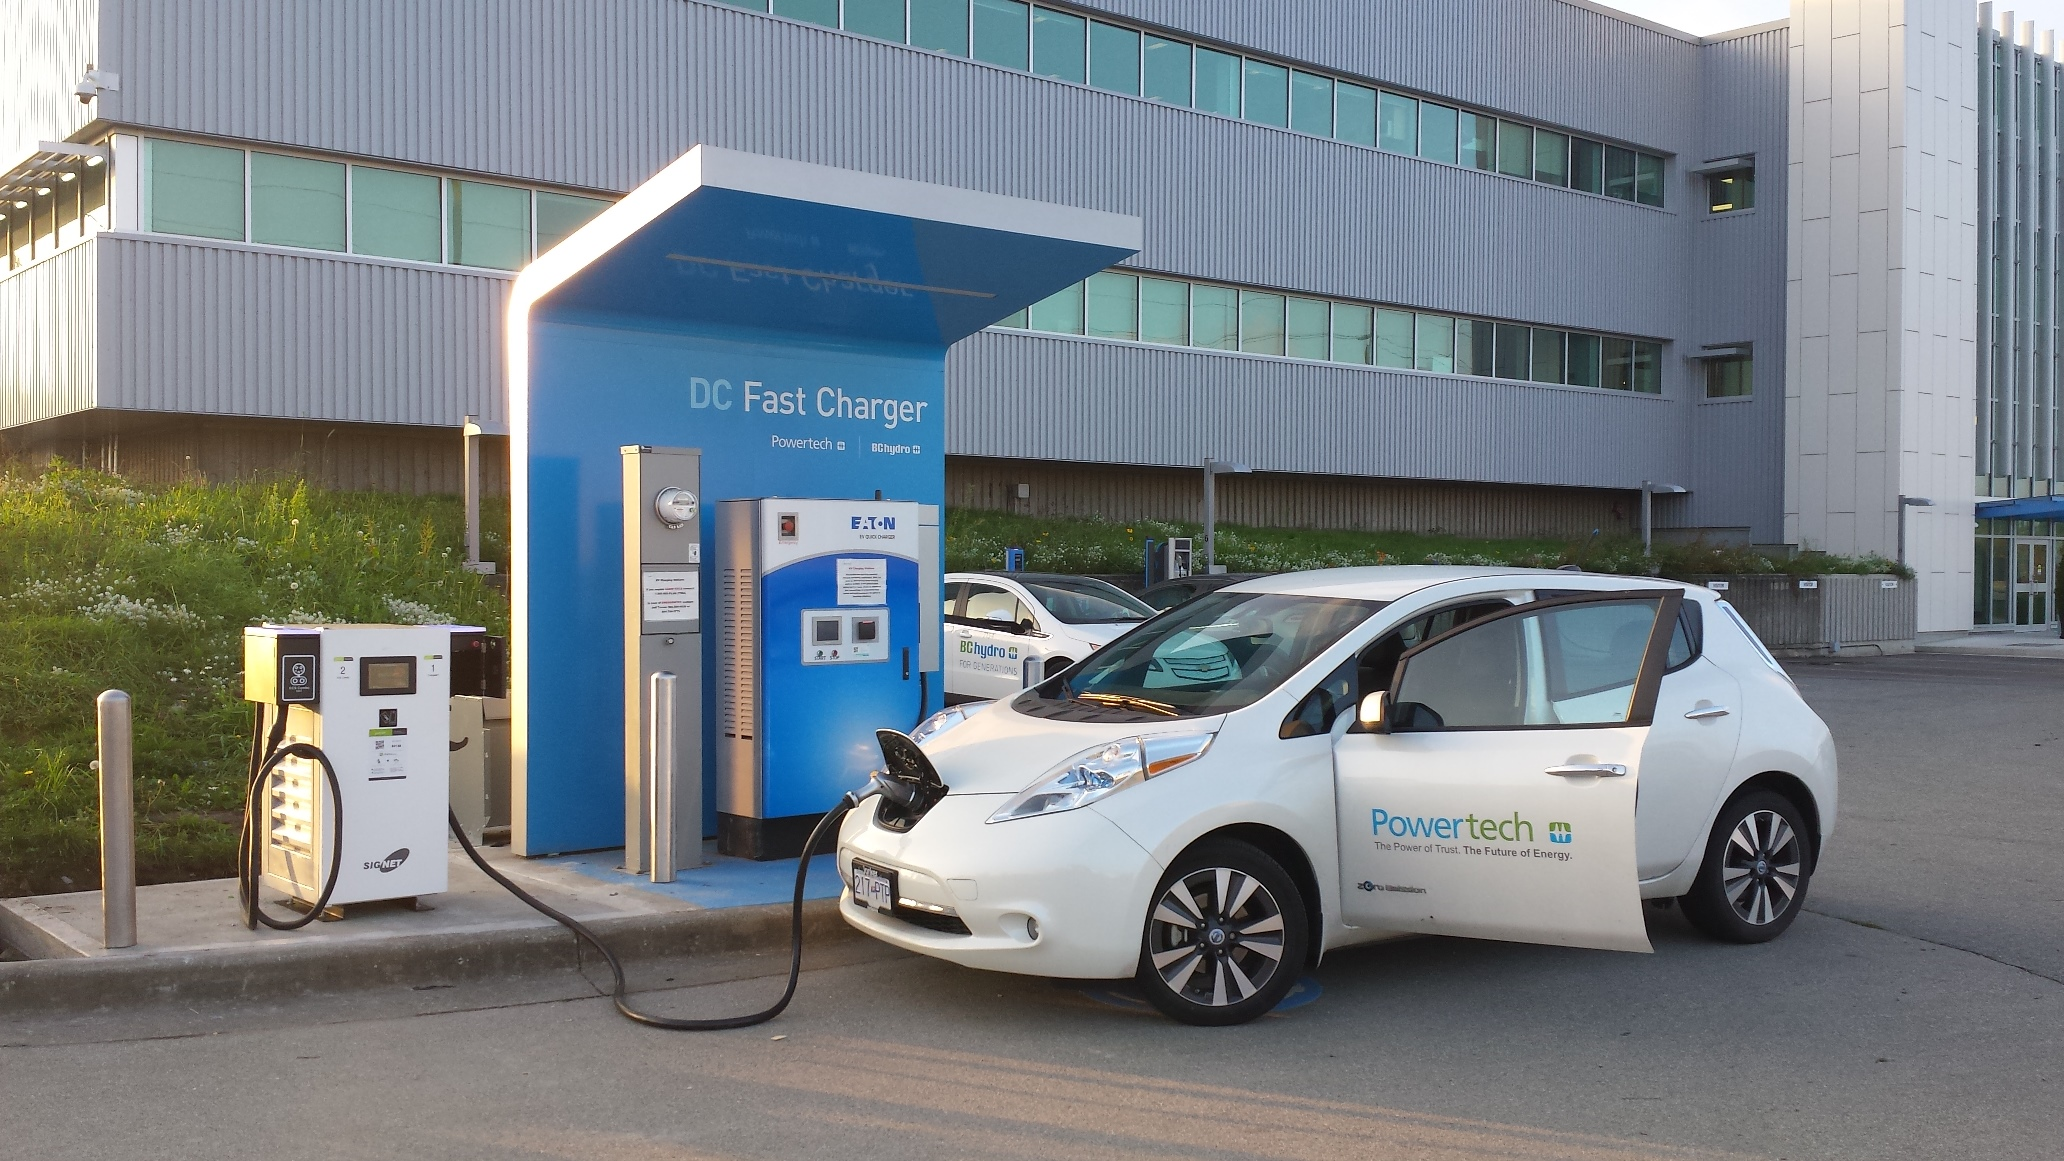 The British Columbia Electric Vehicle Smart Infrastructure